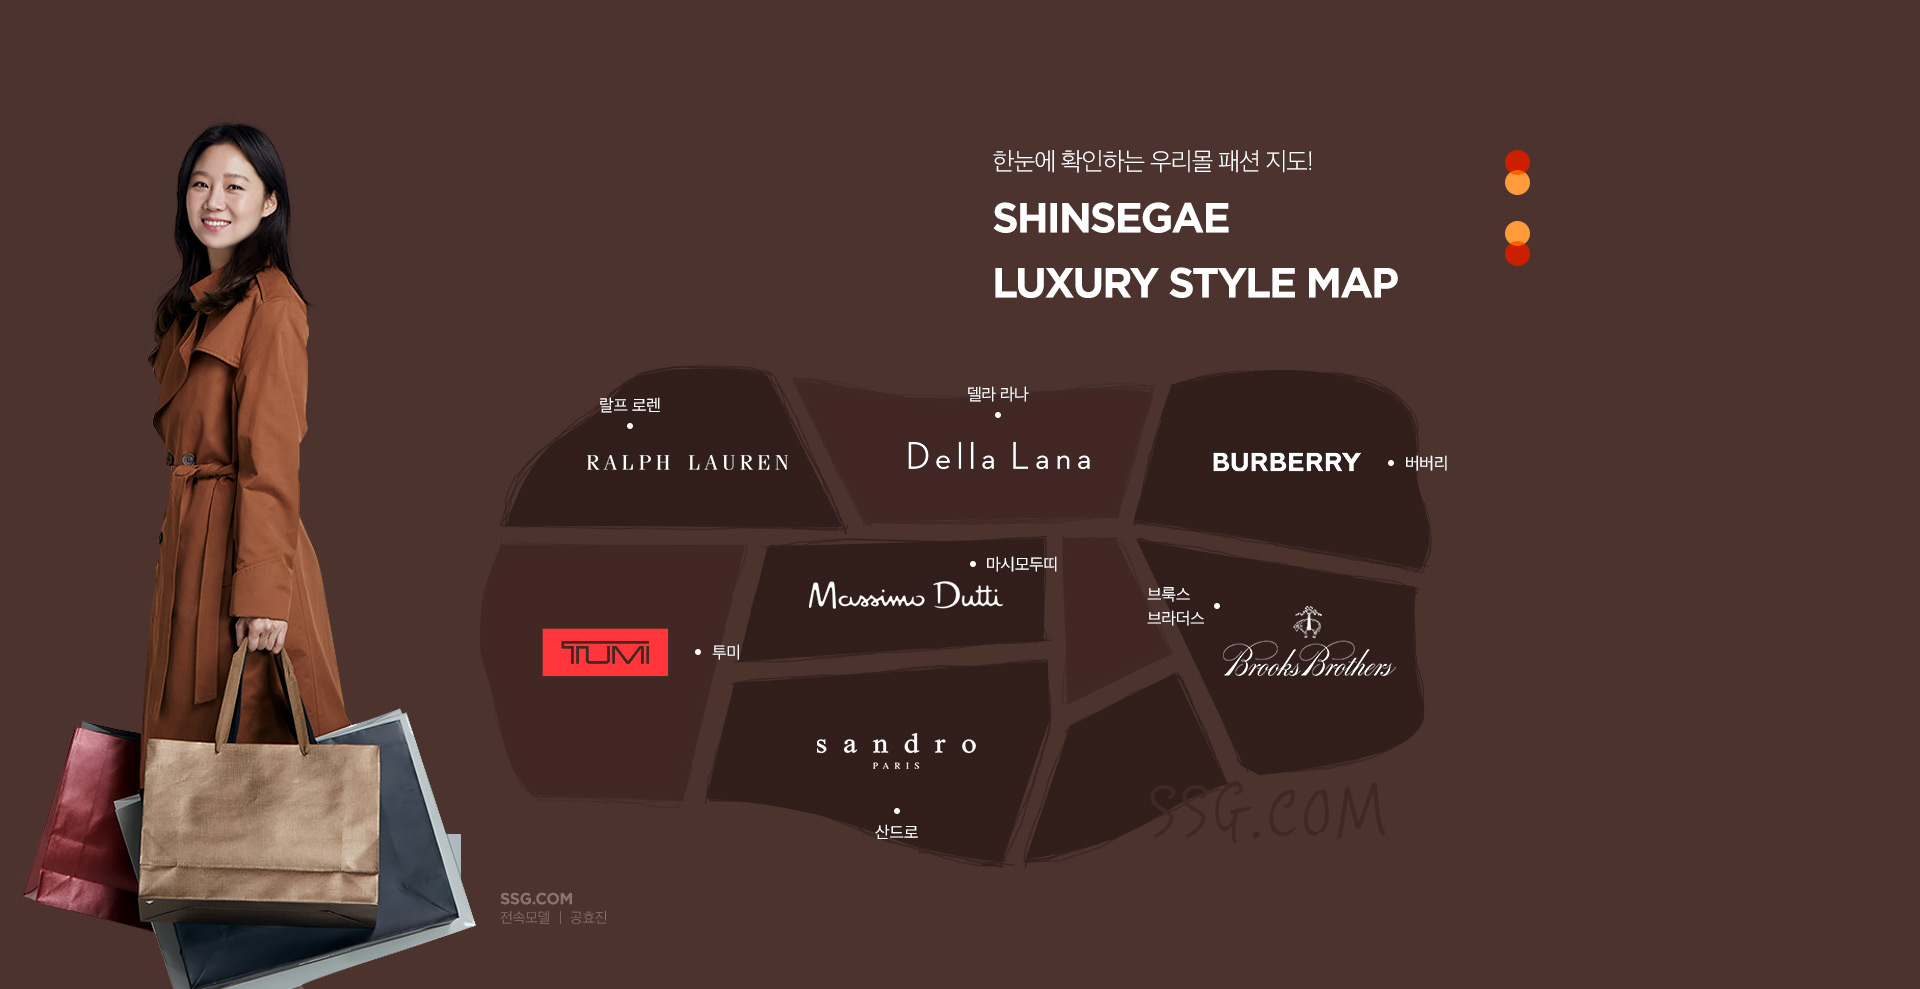 SHINSEGAE LUXURY STYLE MAP